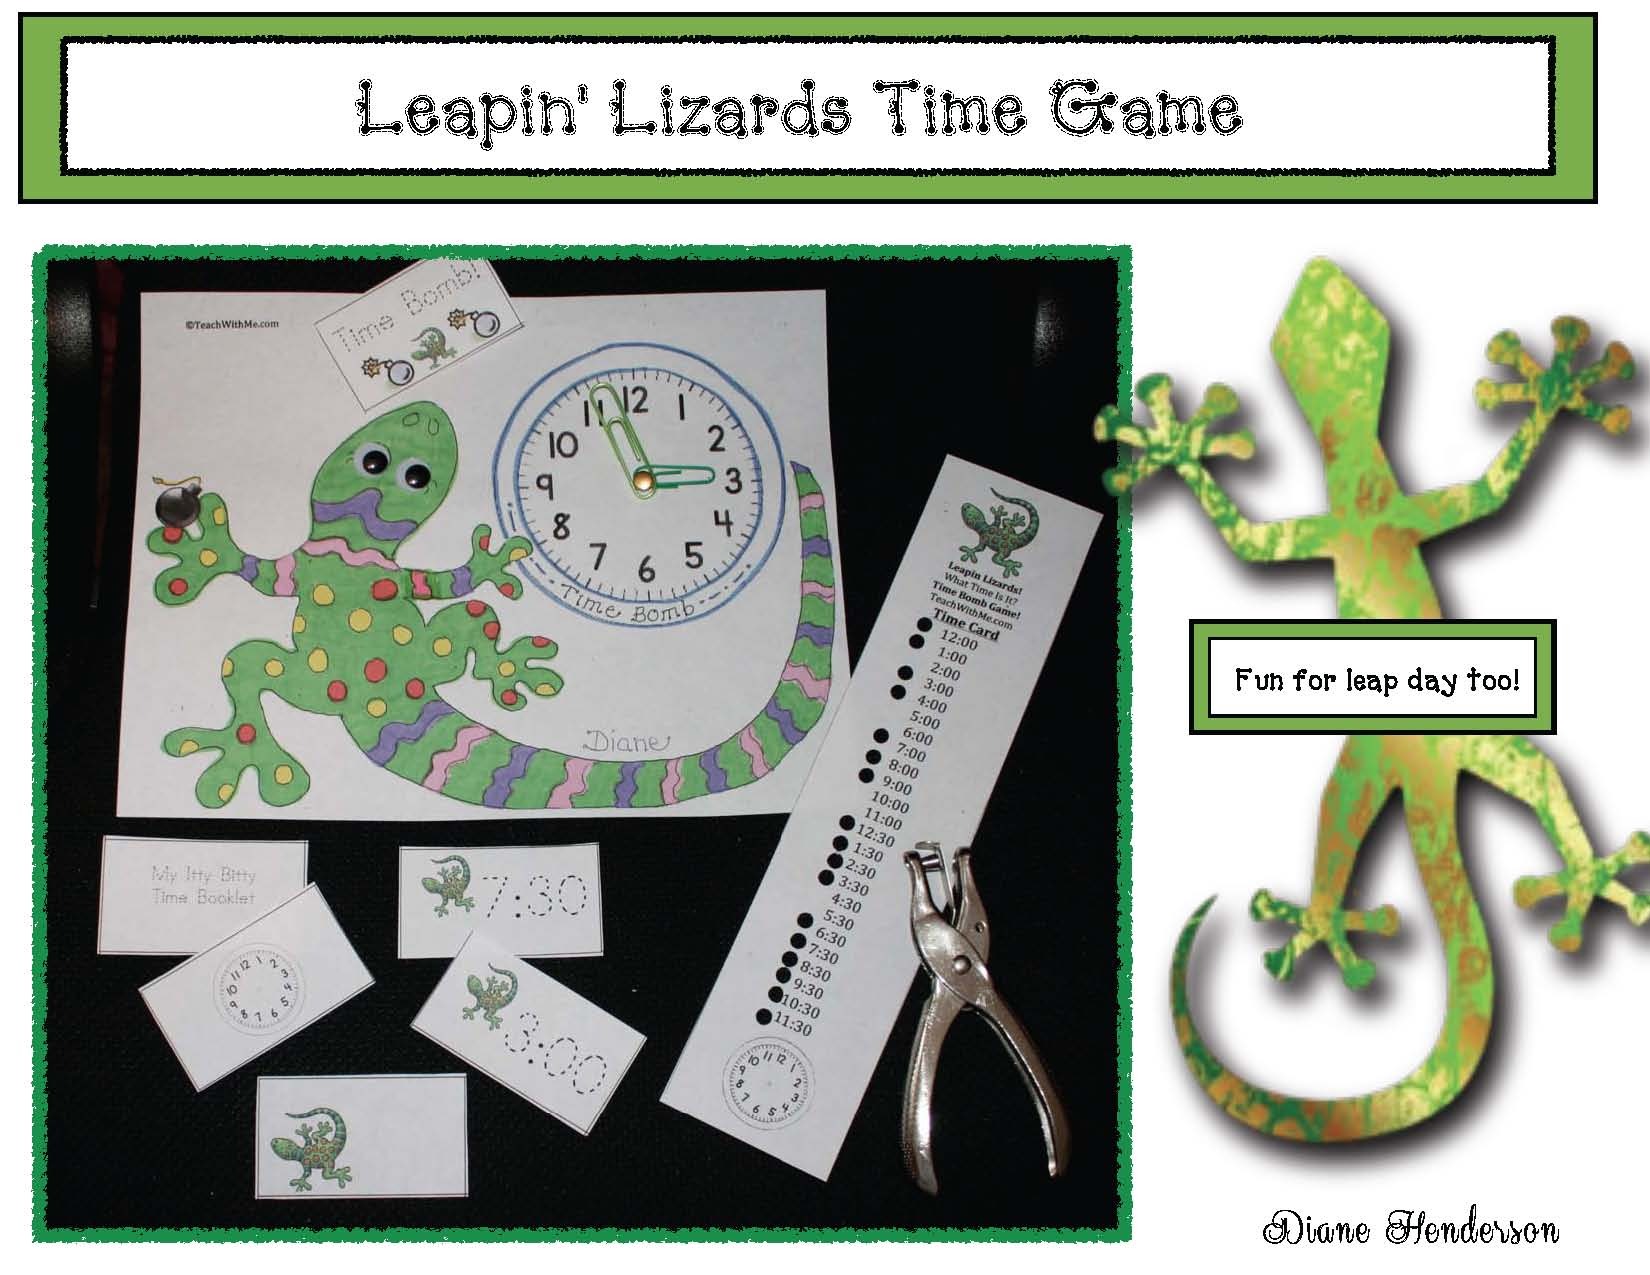 cov leapin lizards time game